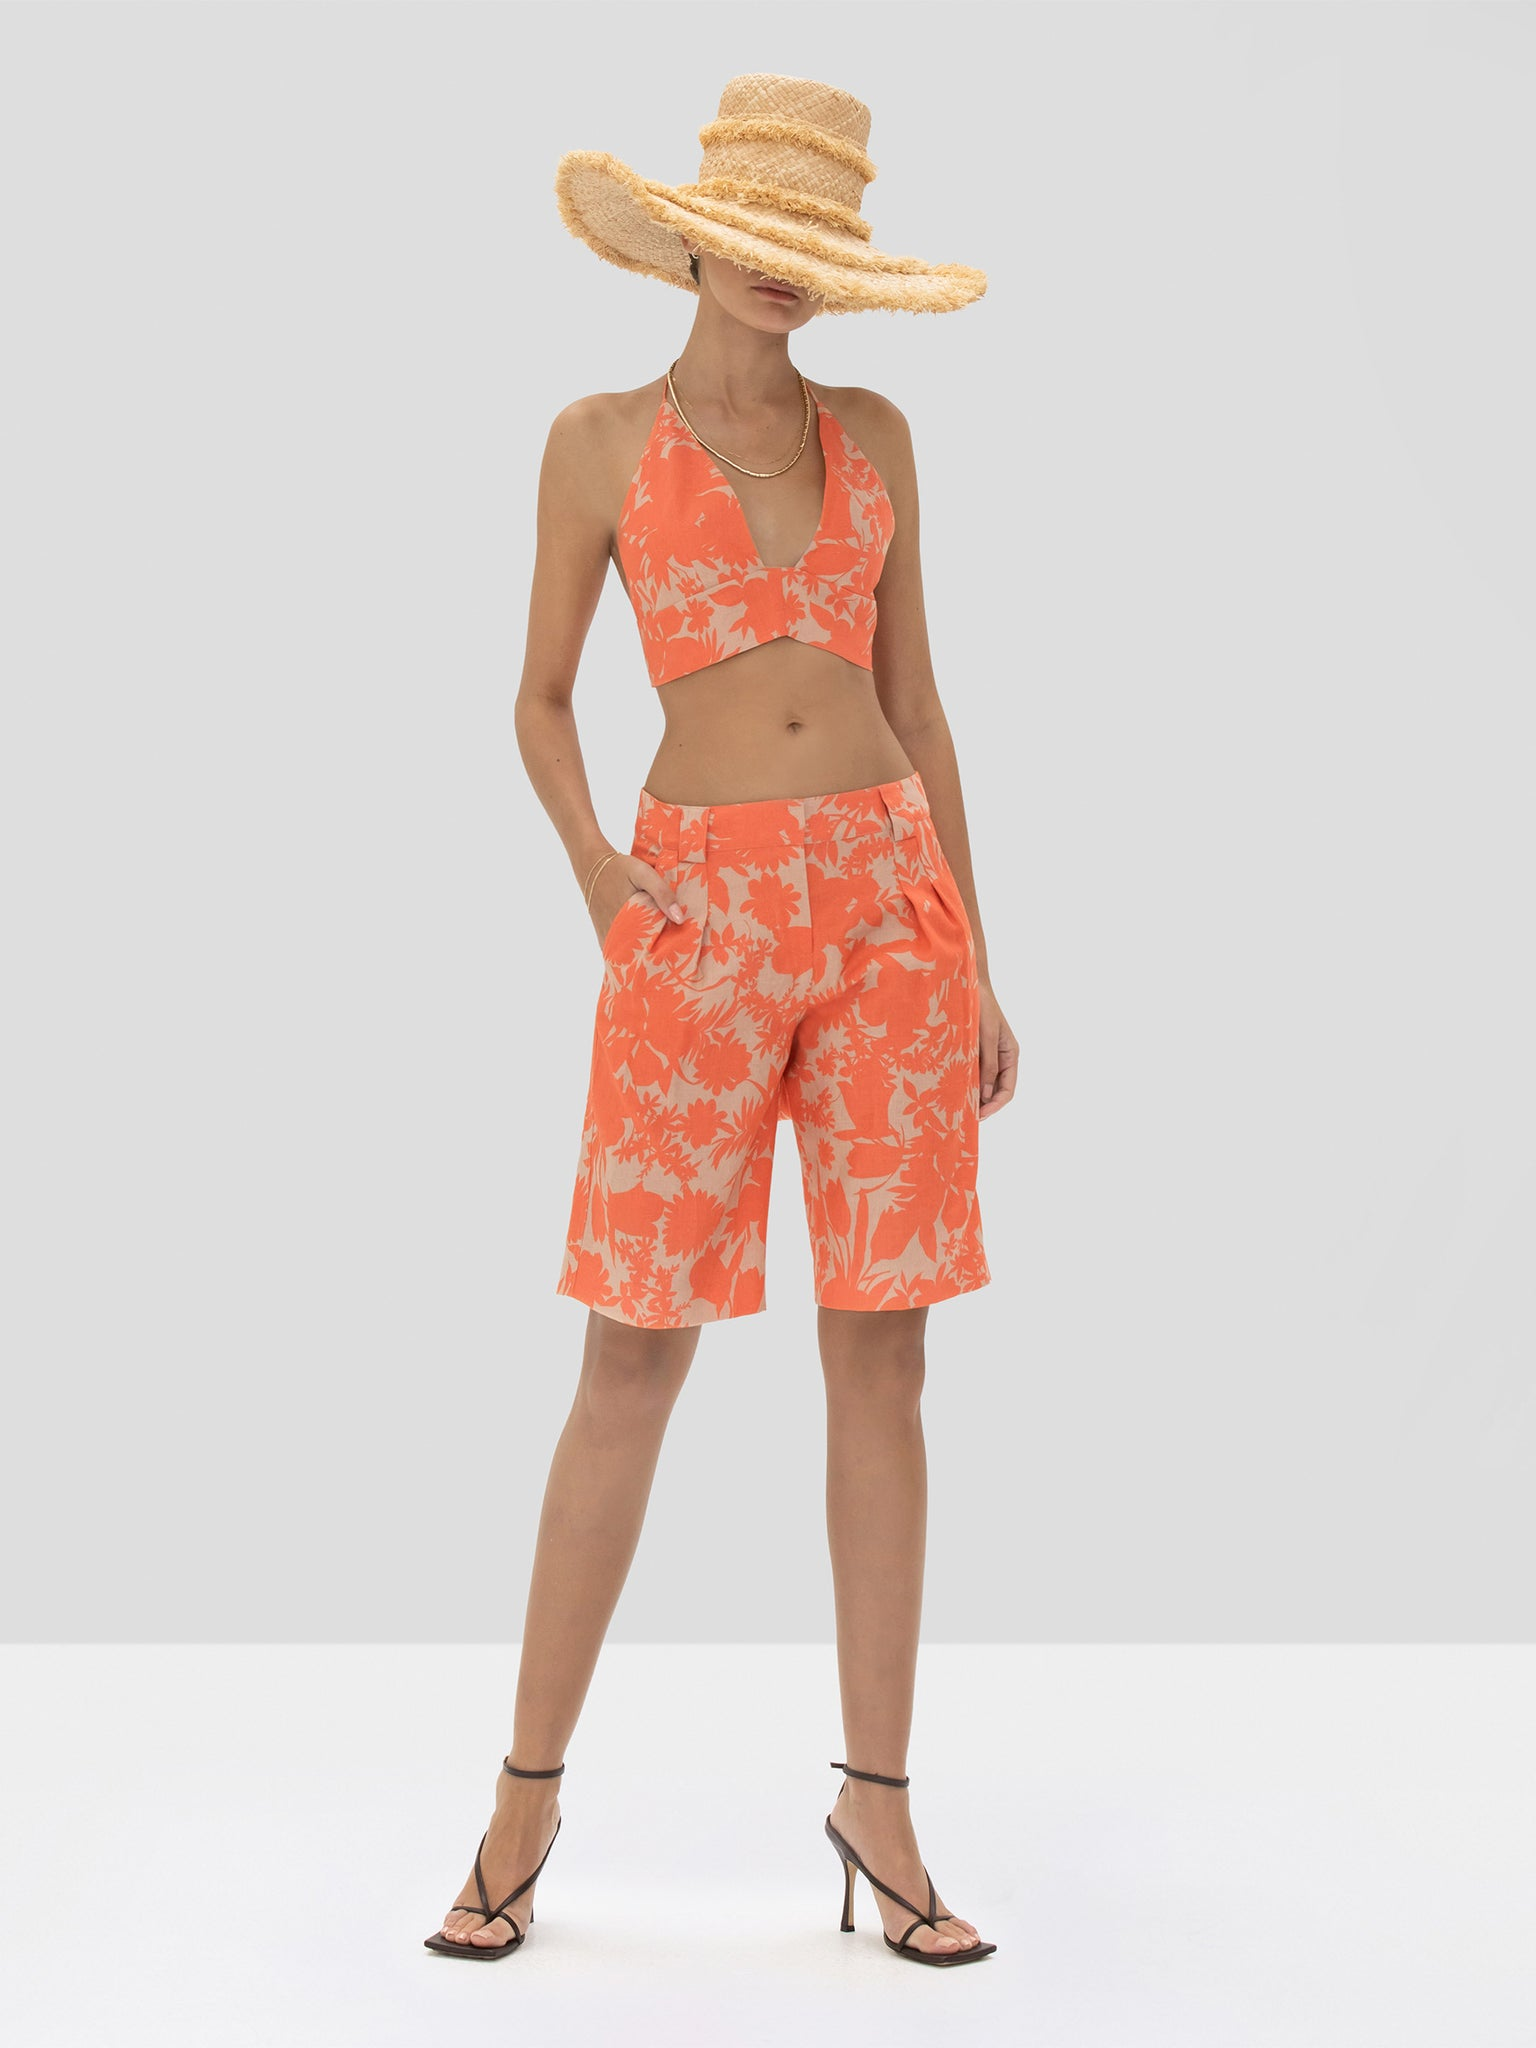 The Gaila Top in Sand Botanical from the Spring Summer 2020 Ready To Wear Collection.